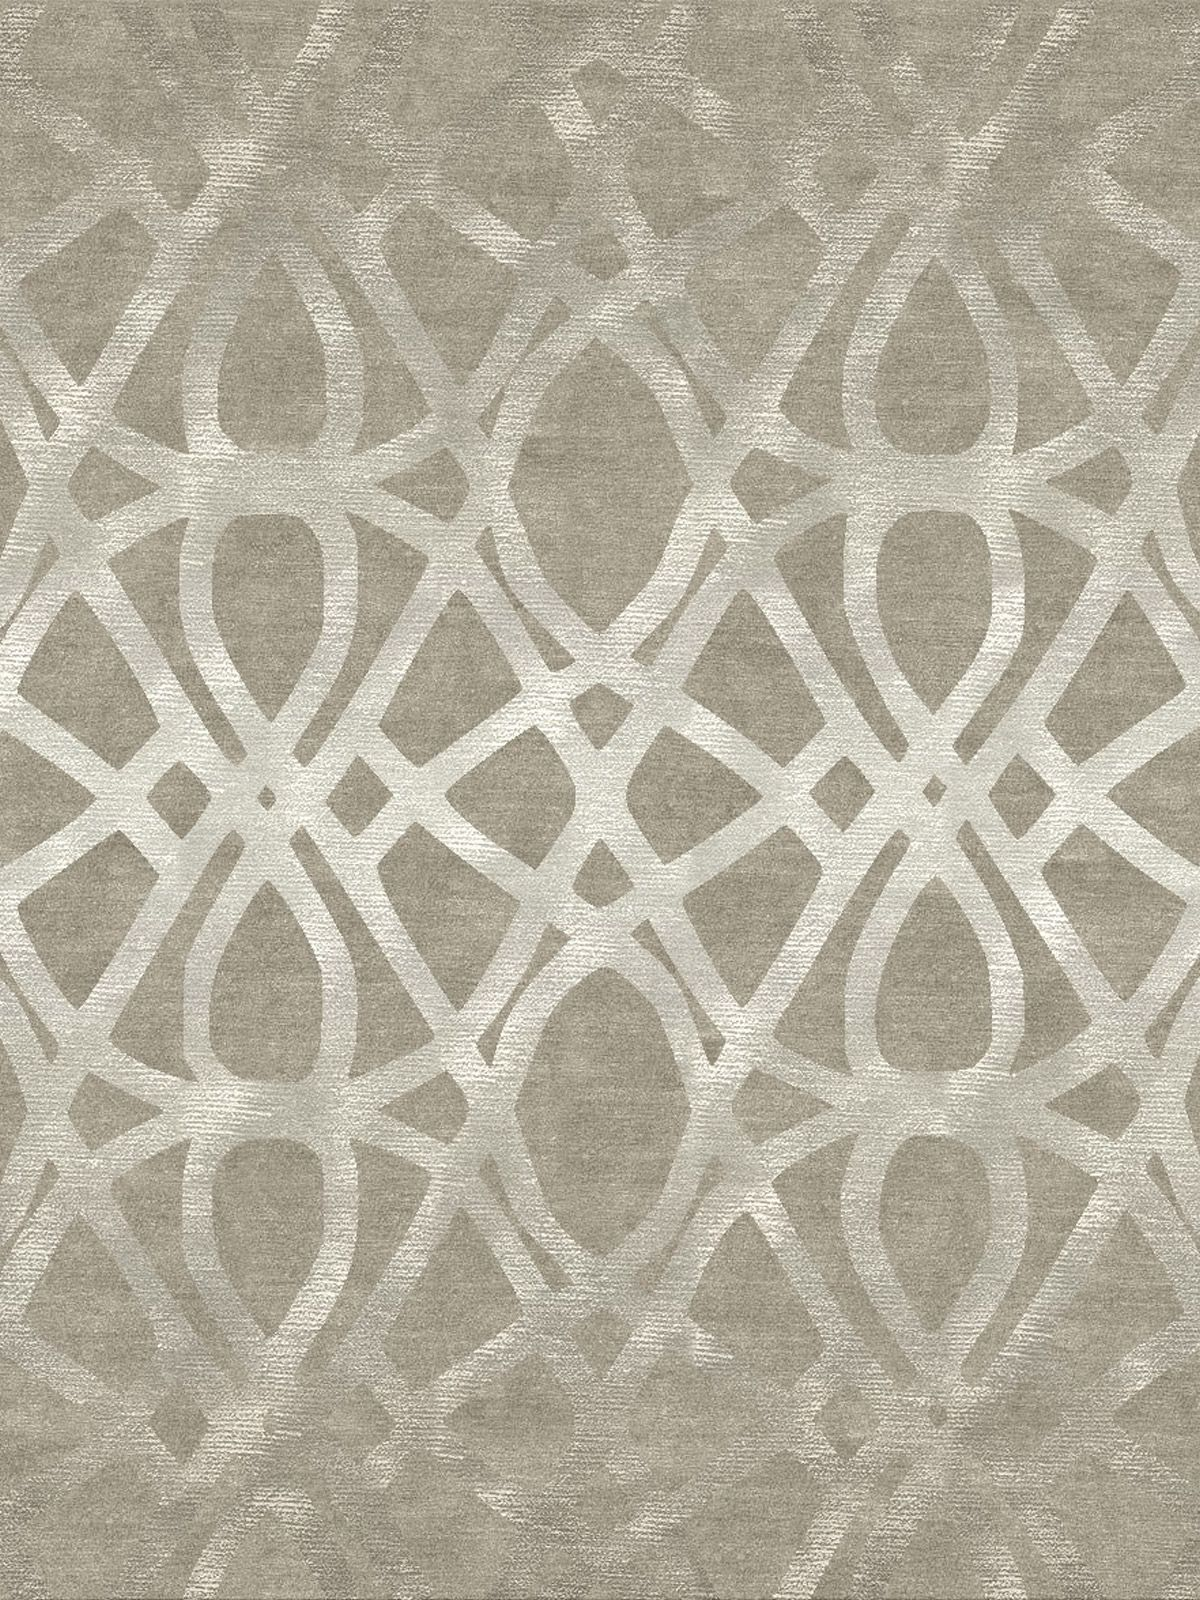 Blenheim Champagne Rug In 2019 Rugs On Carpet Rugs